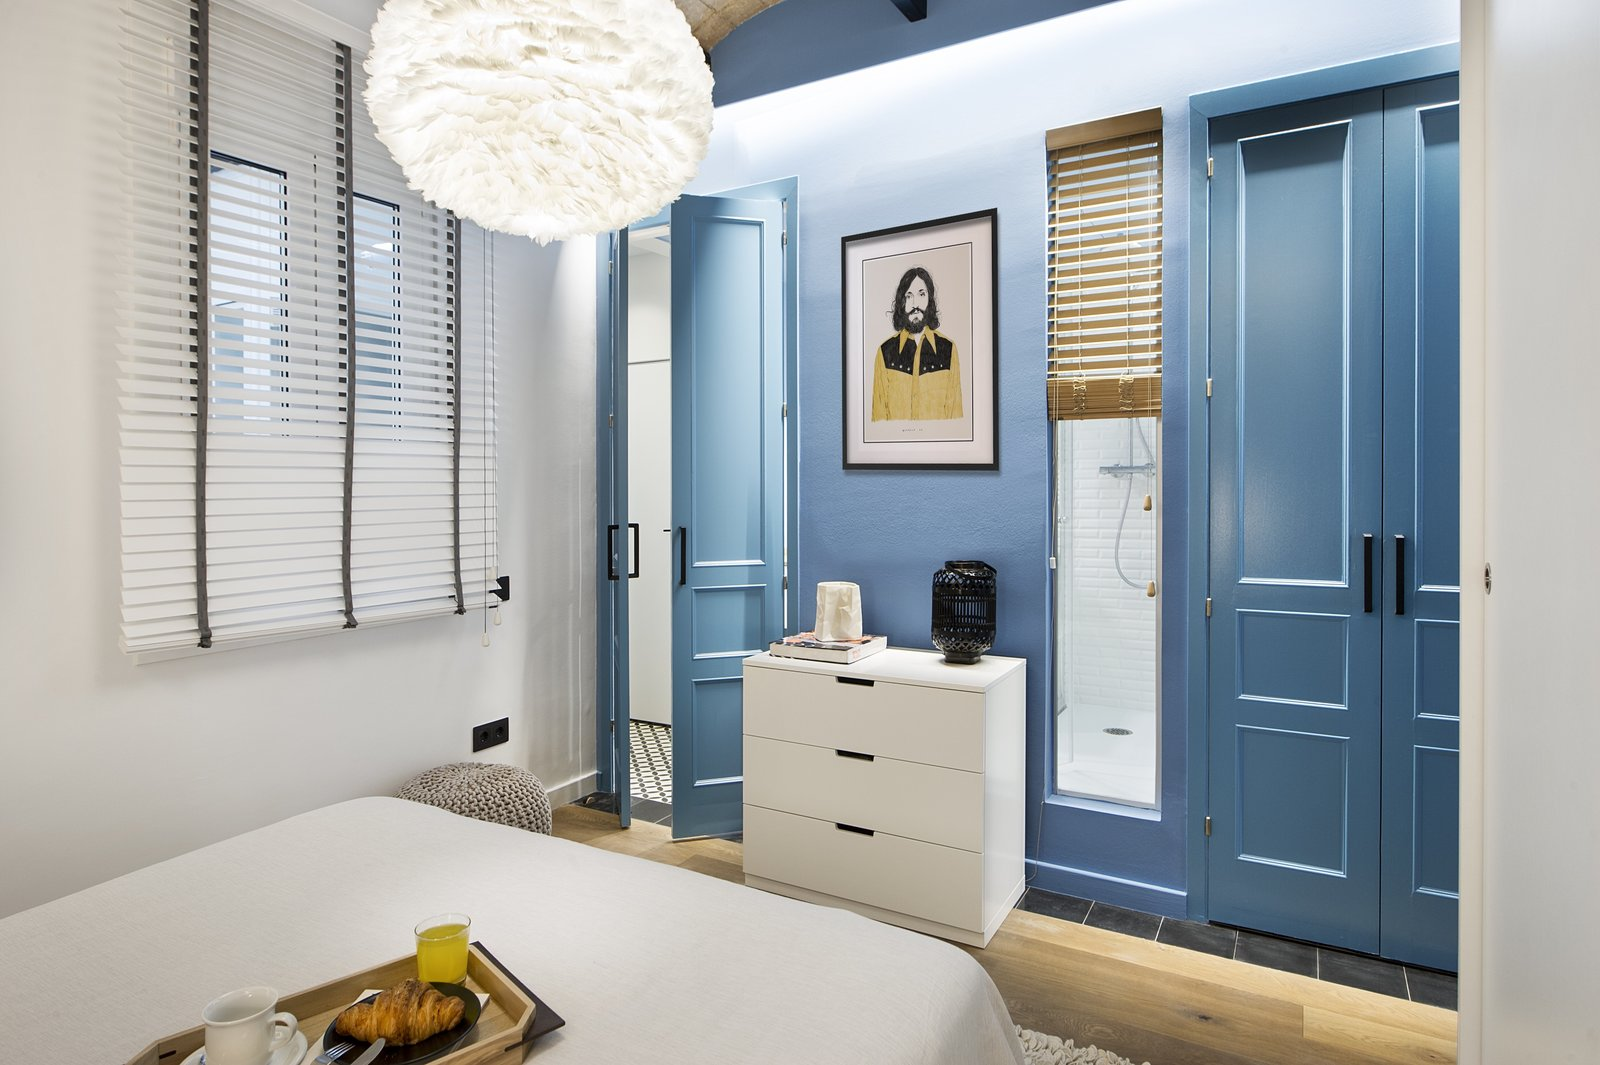 Bedroom, Dresser, Pendant Lighting, Light Hardwood Floor, and Bed  Photo 2 of 11 in A Smart Layout Maximizes Space in This Compact Urban Beach Apartment in Barcelona